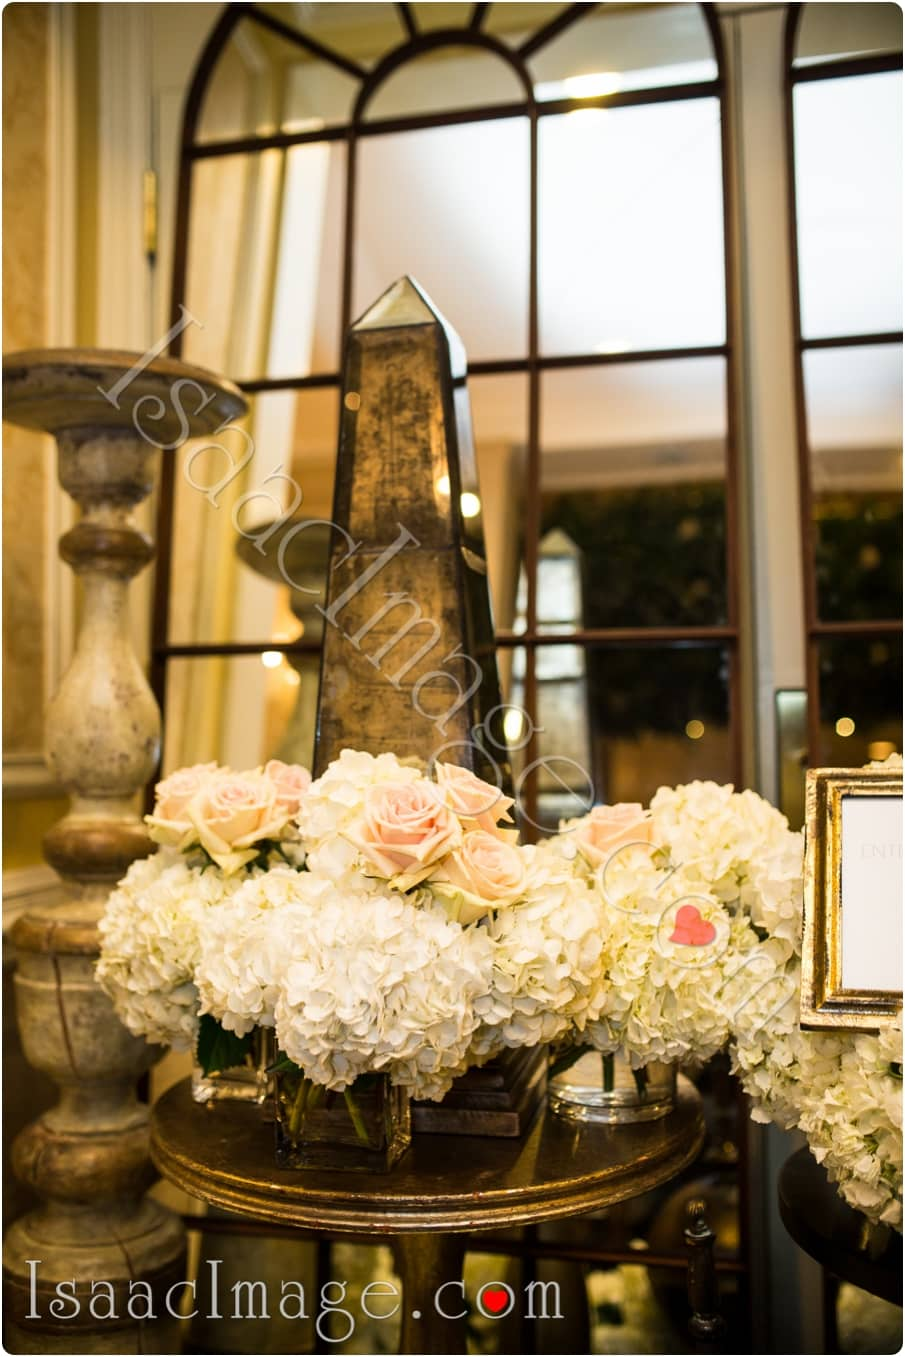 0135 wedluxe bridal show isaacimage.jpg